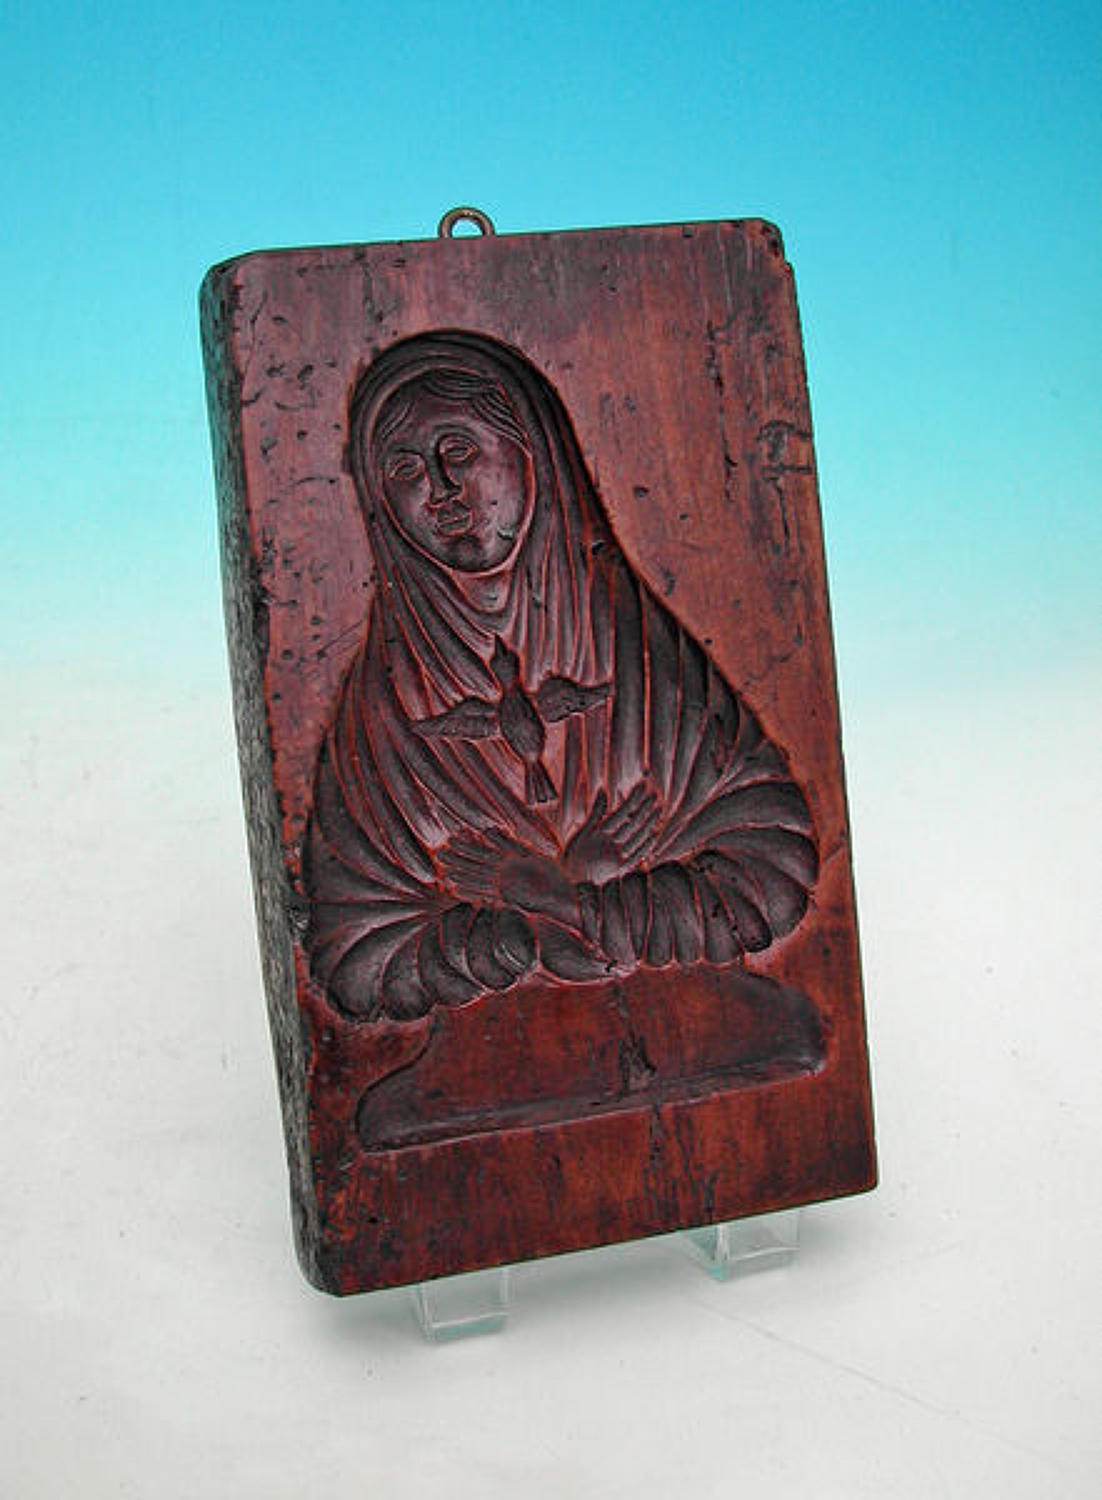 18thc Communion Wafer Mould of the Virgin Mary.  French. C1780-C1800.